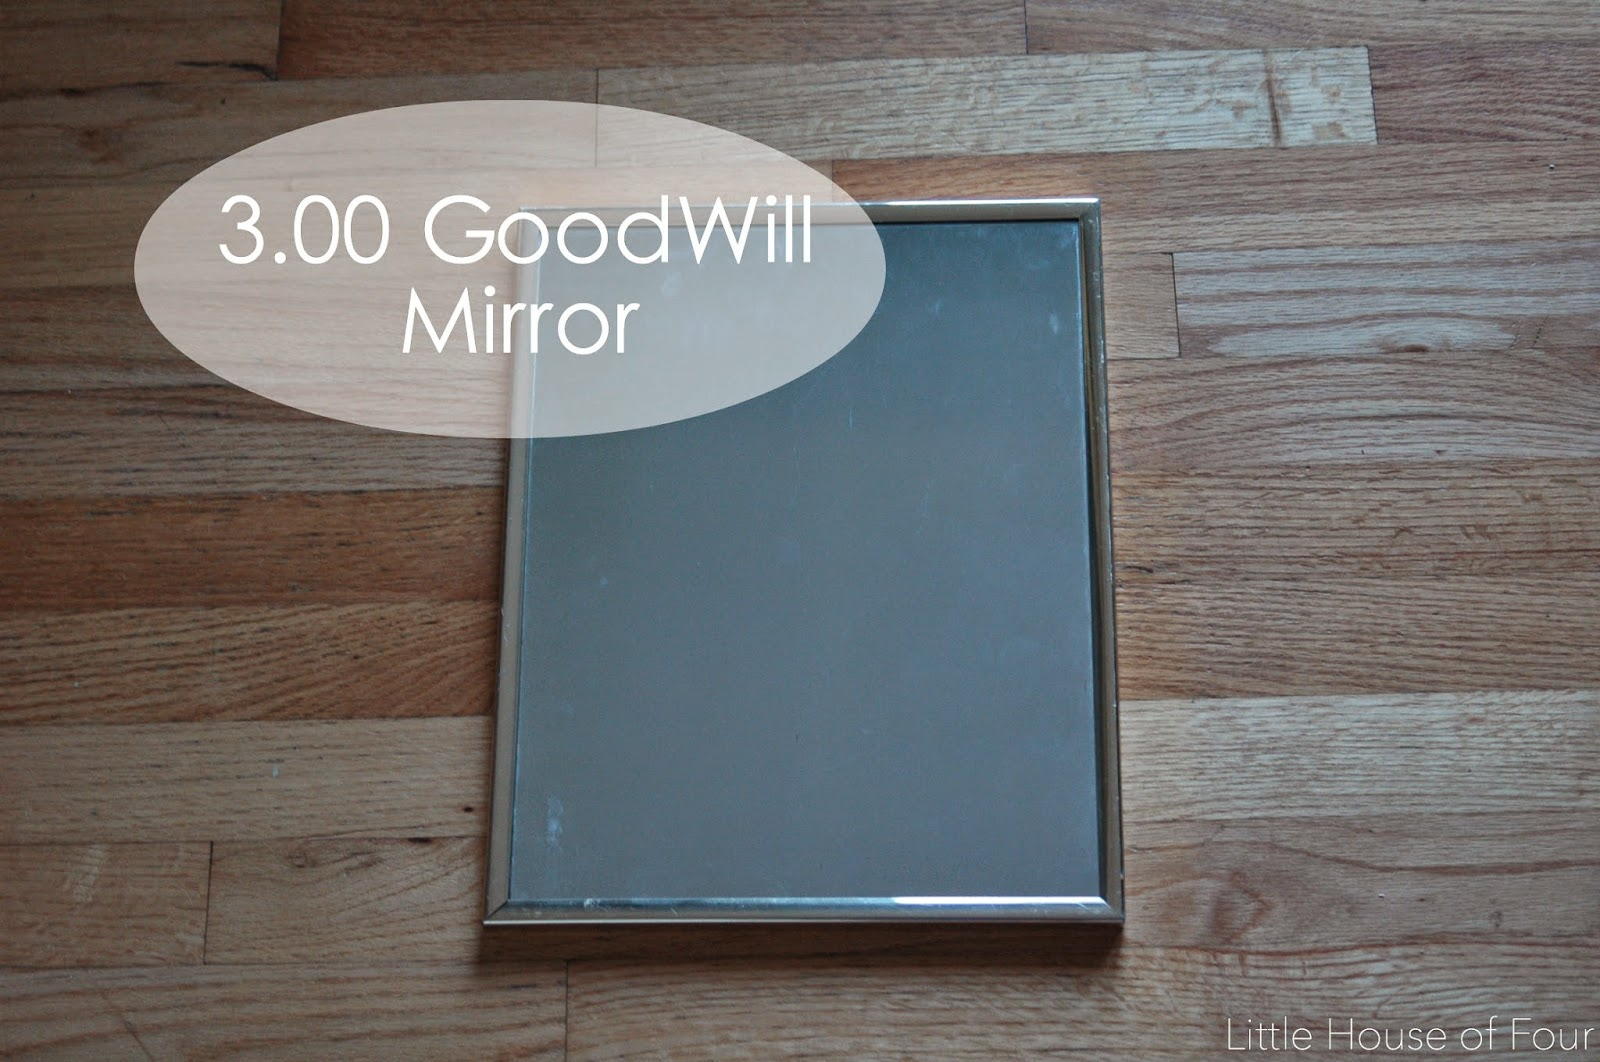 Goodwill Mirror used for mirror effect